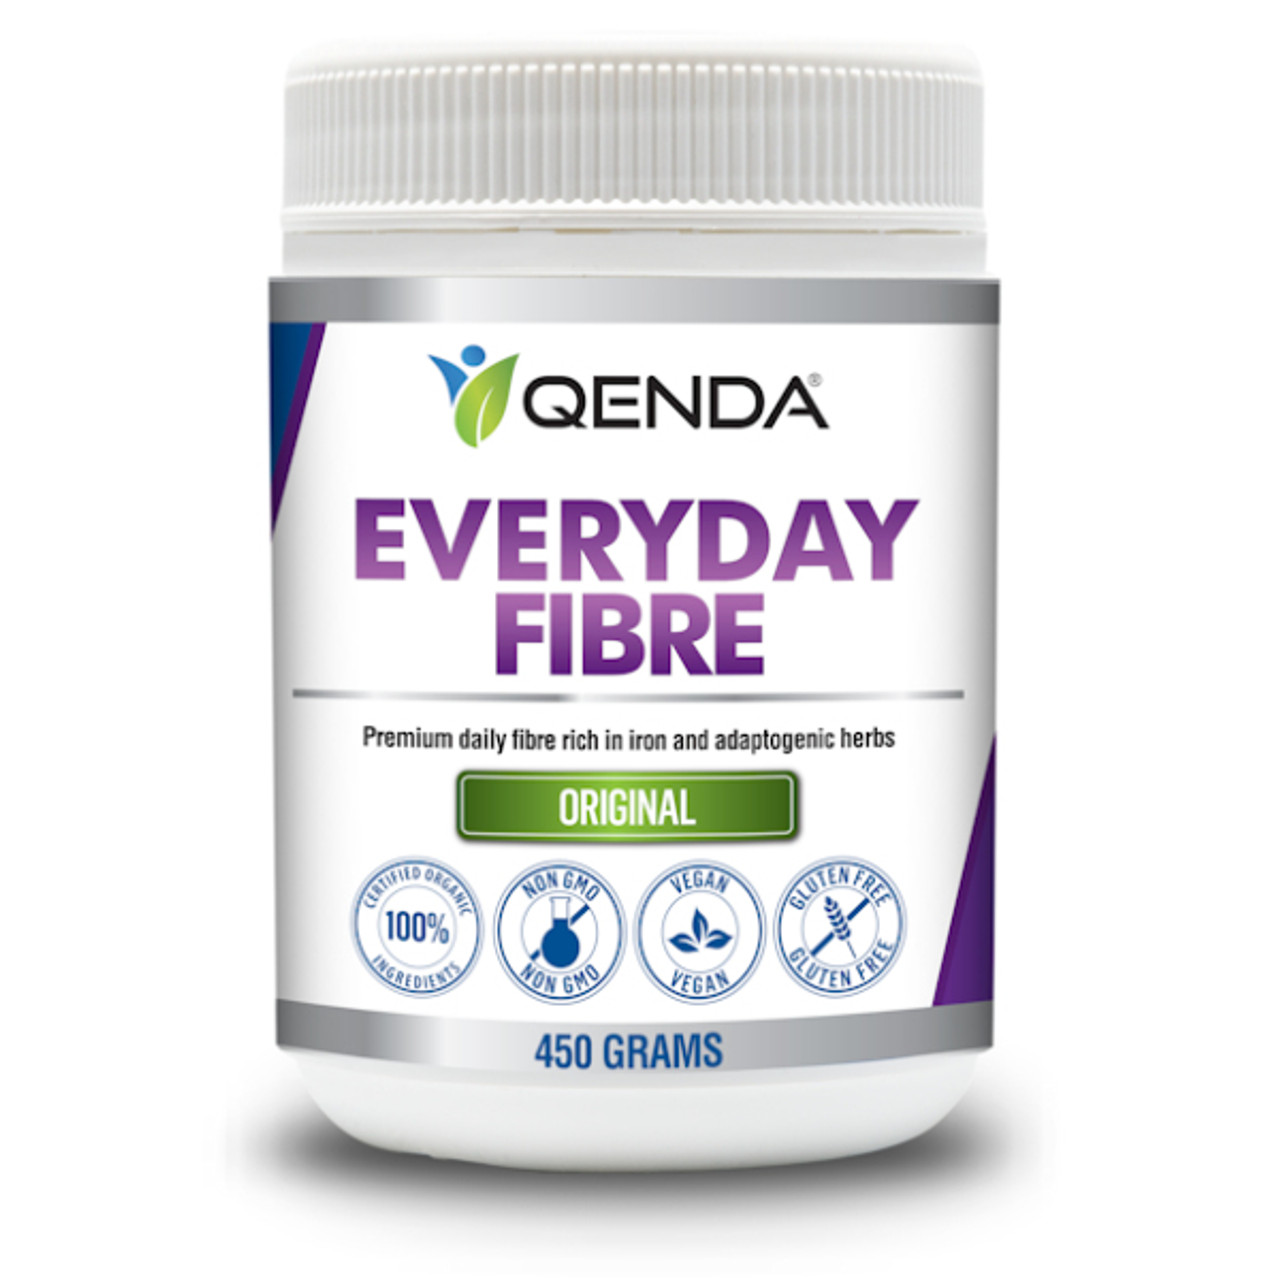 Qenda Everyday Fibre - Original Formulation 450g